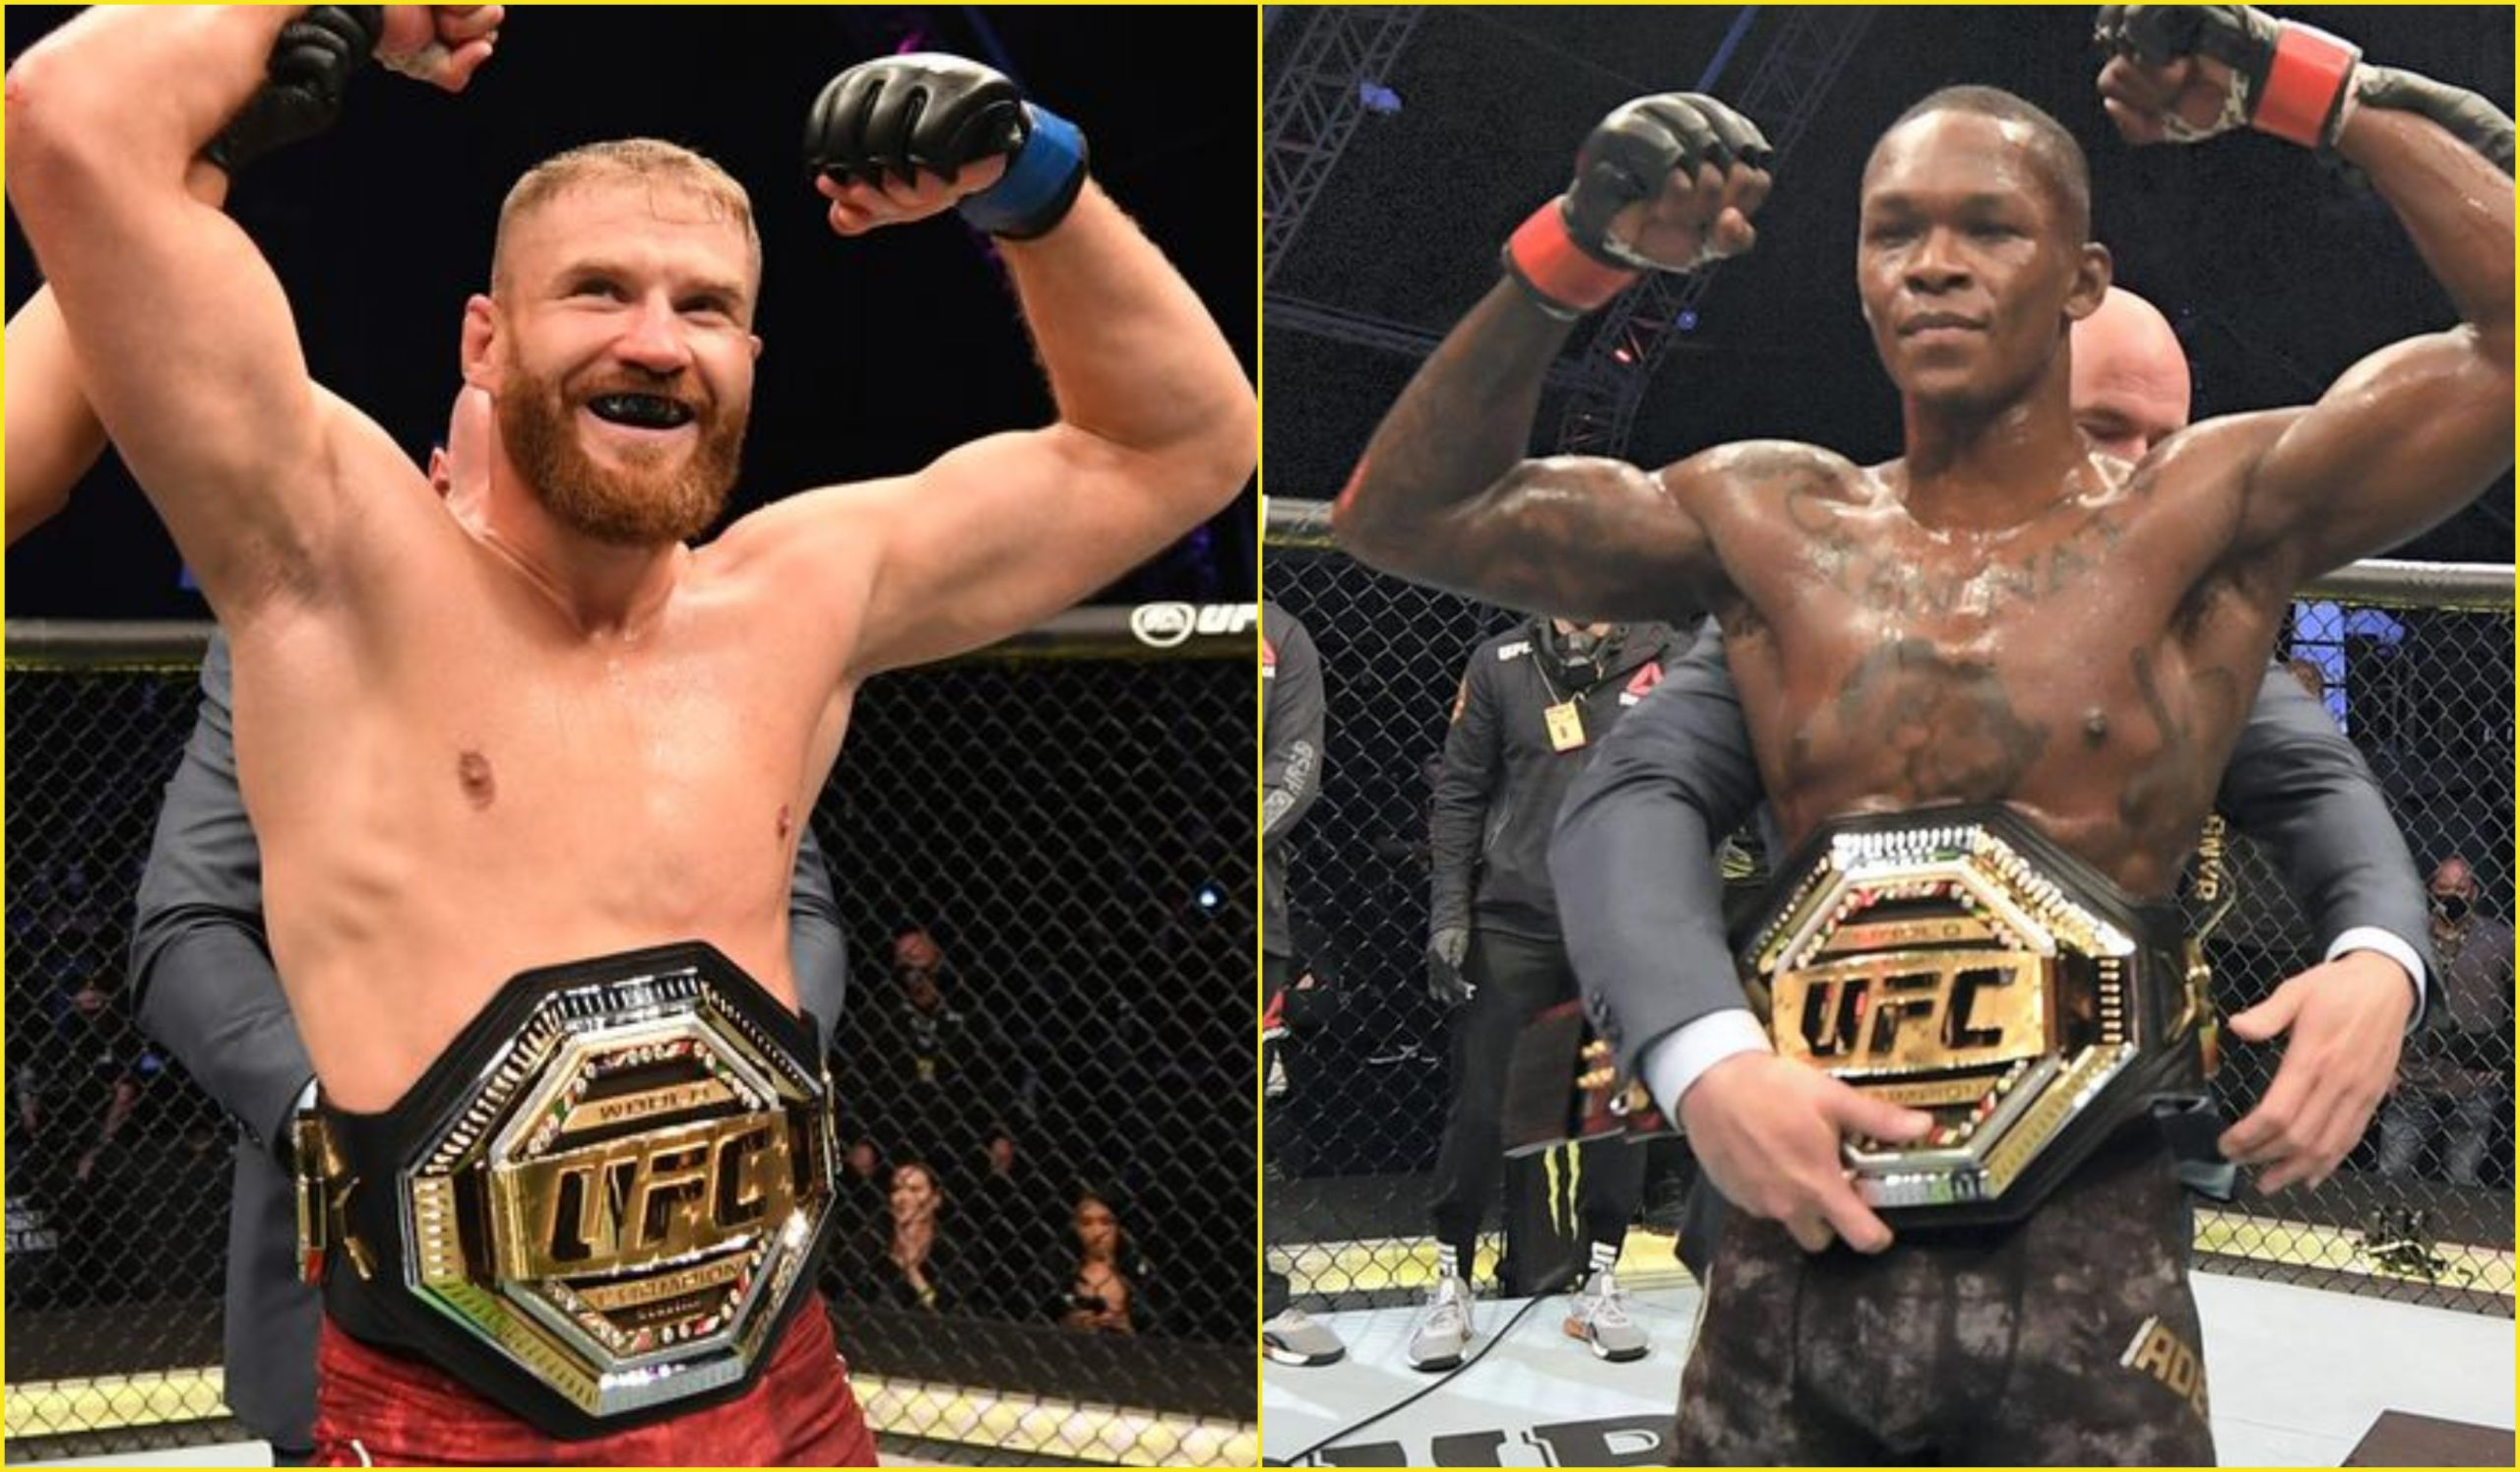 Jan Blachowicz is ready for a super fight against middleweight champion Israel Adesanya - MMA INDIA